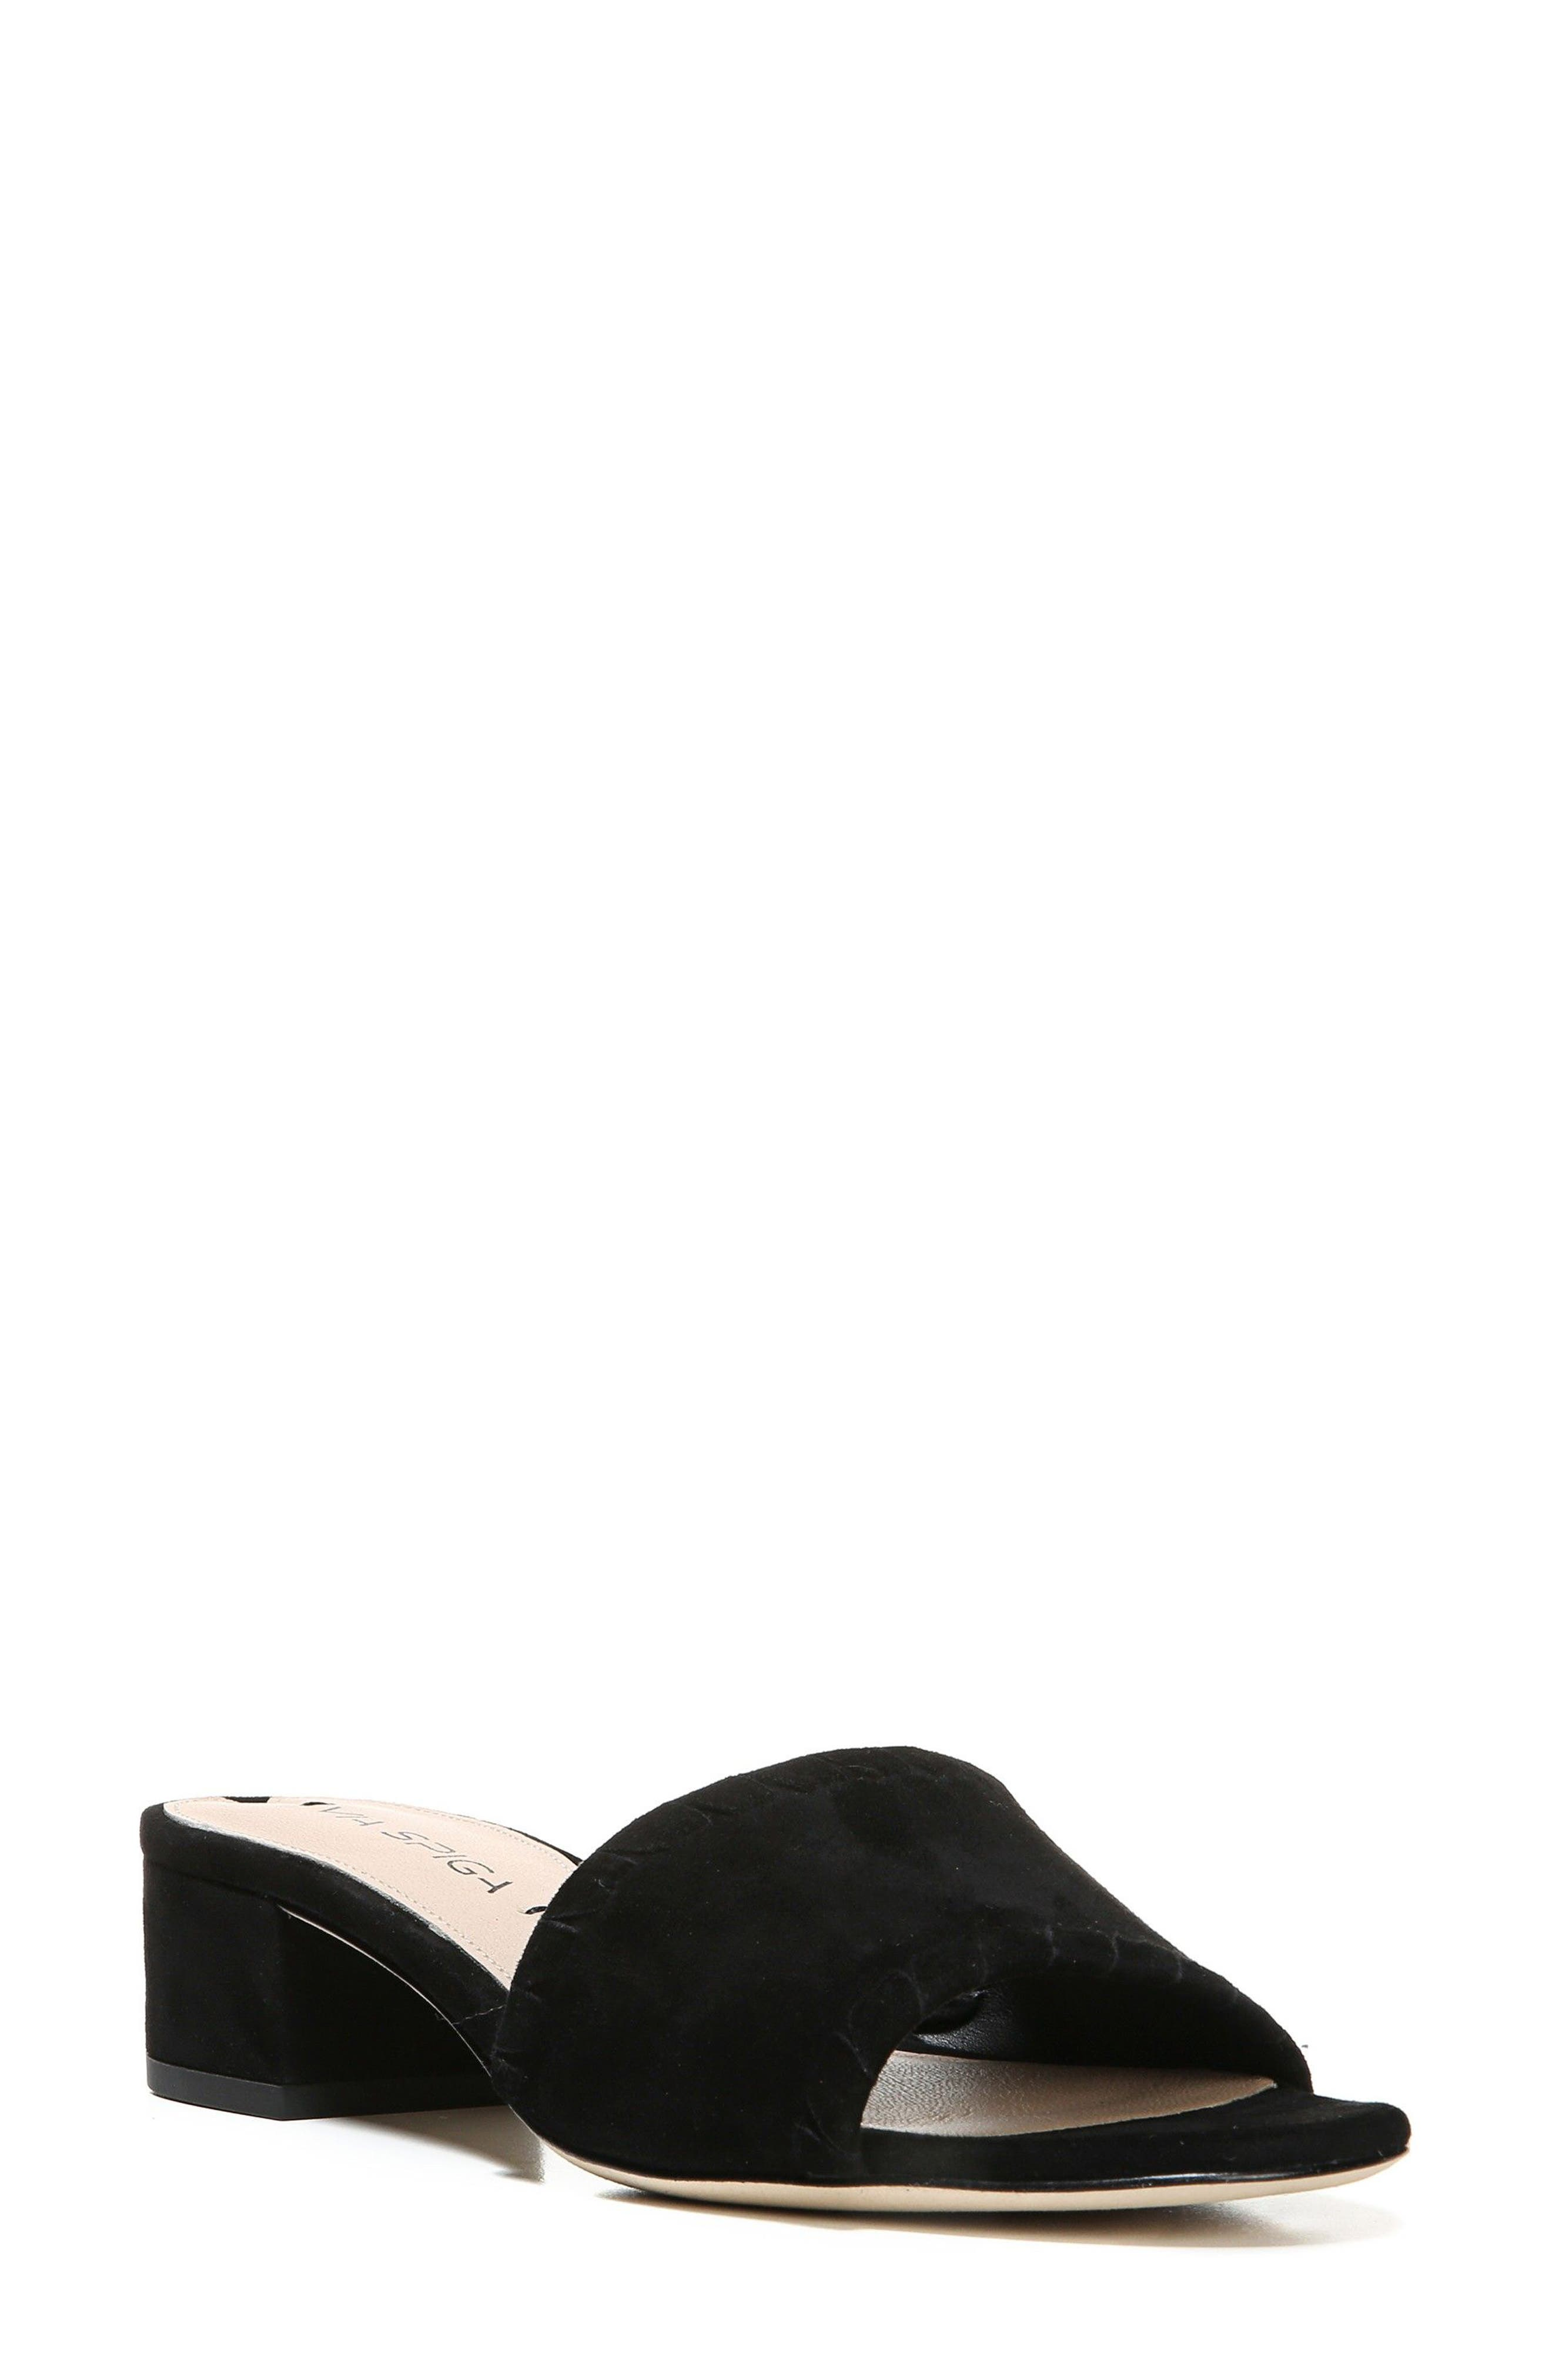 Main Image - Via Spiga Gwendolyn Slide Sandal (Women)